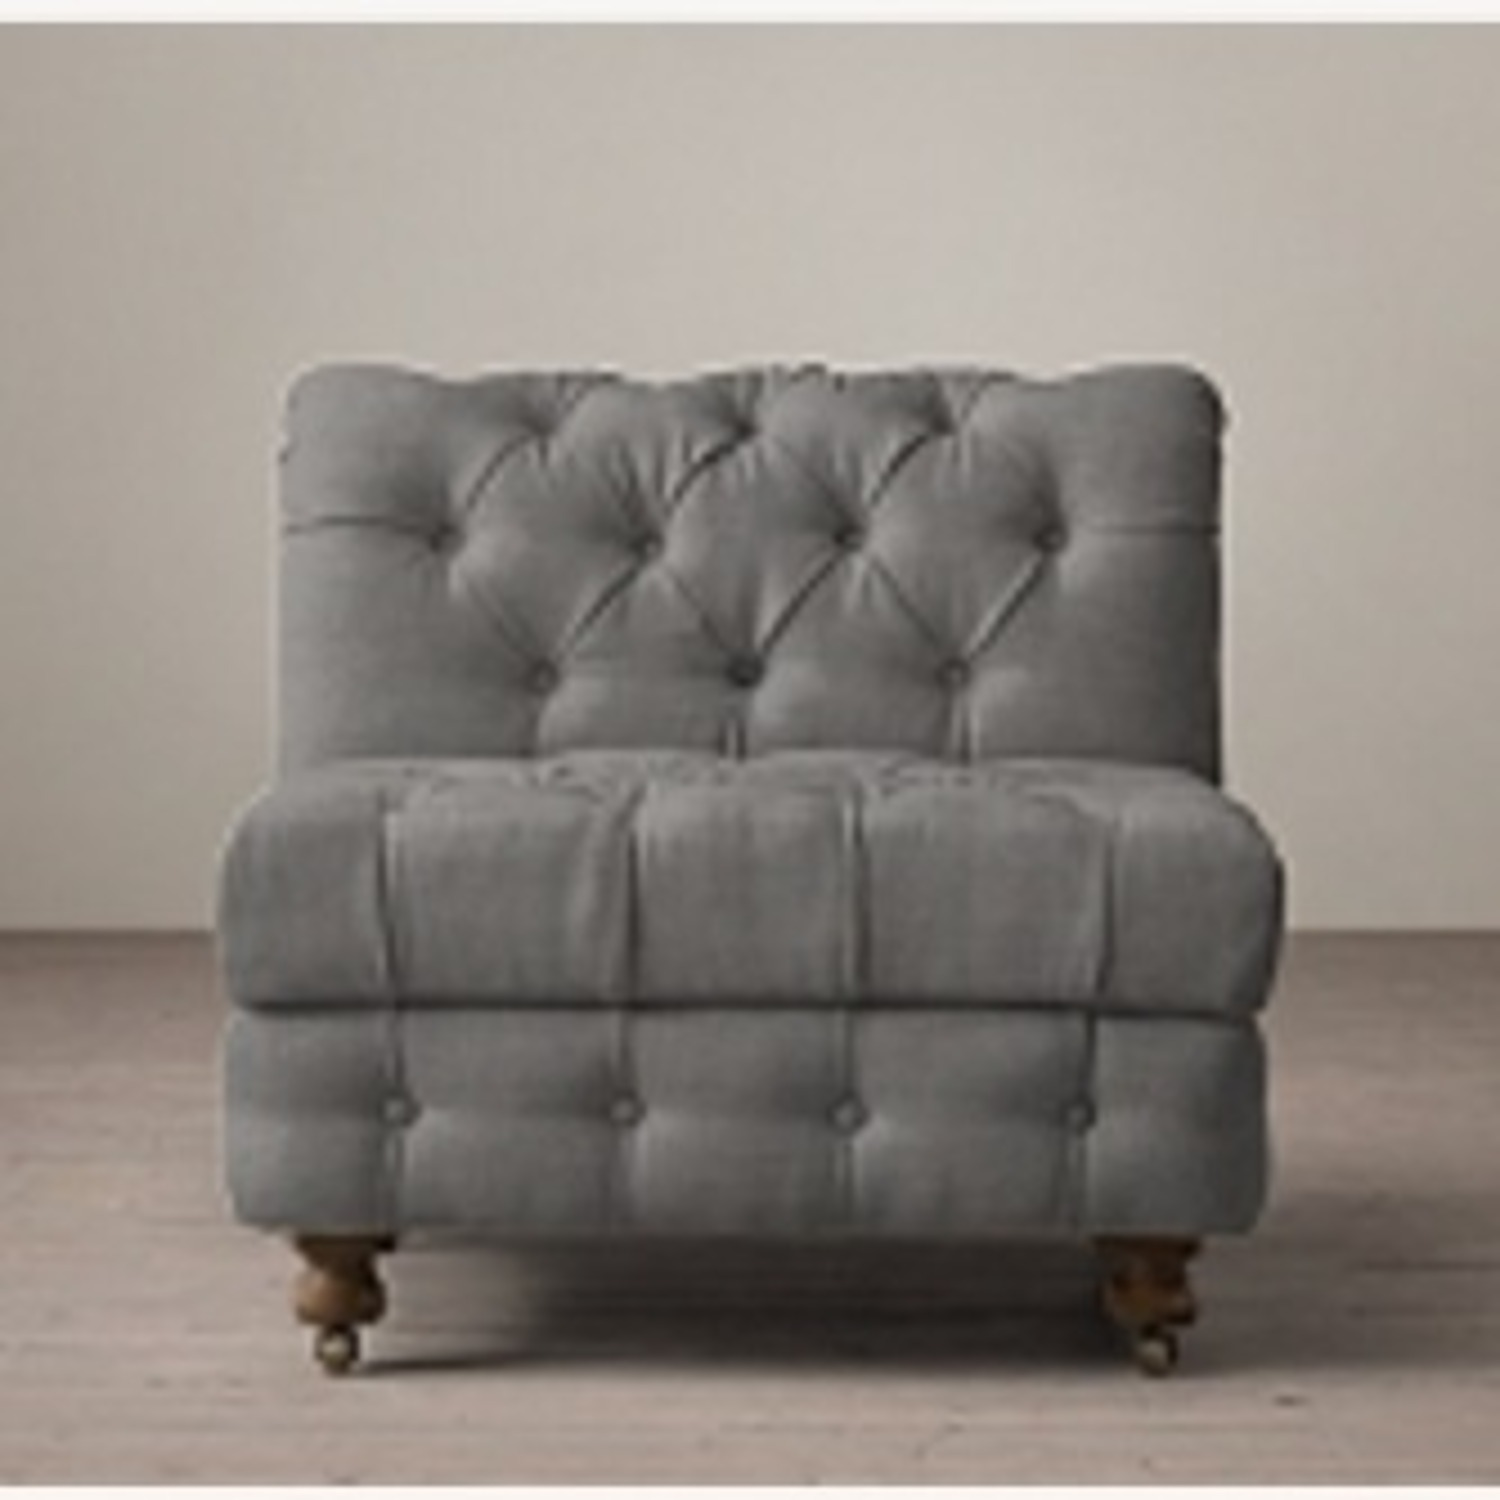 Restoration Hardware Tufted Linen Sectional Couch - image-1